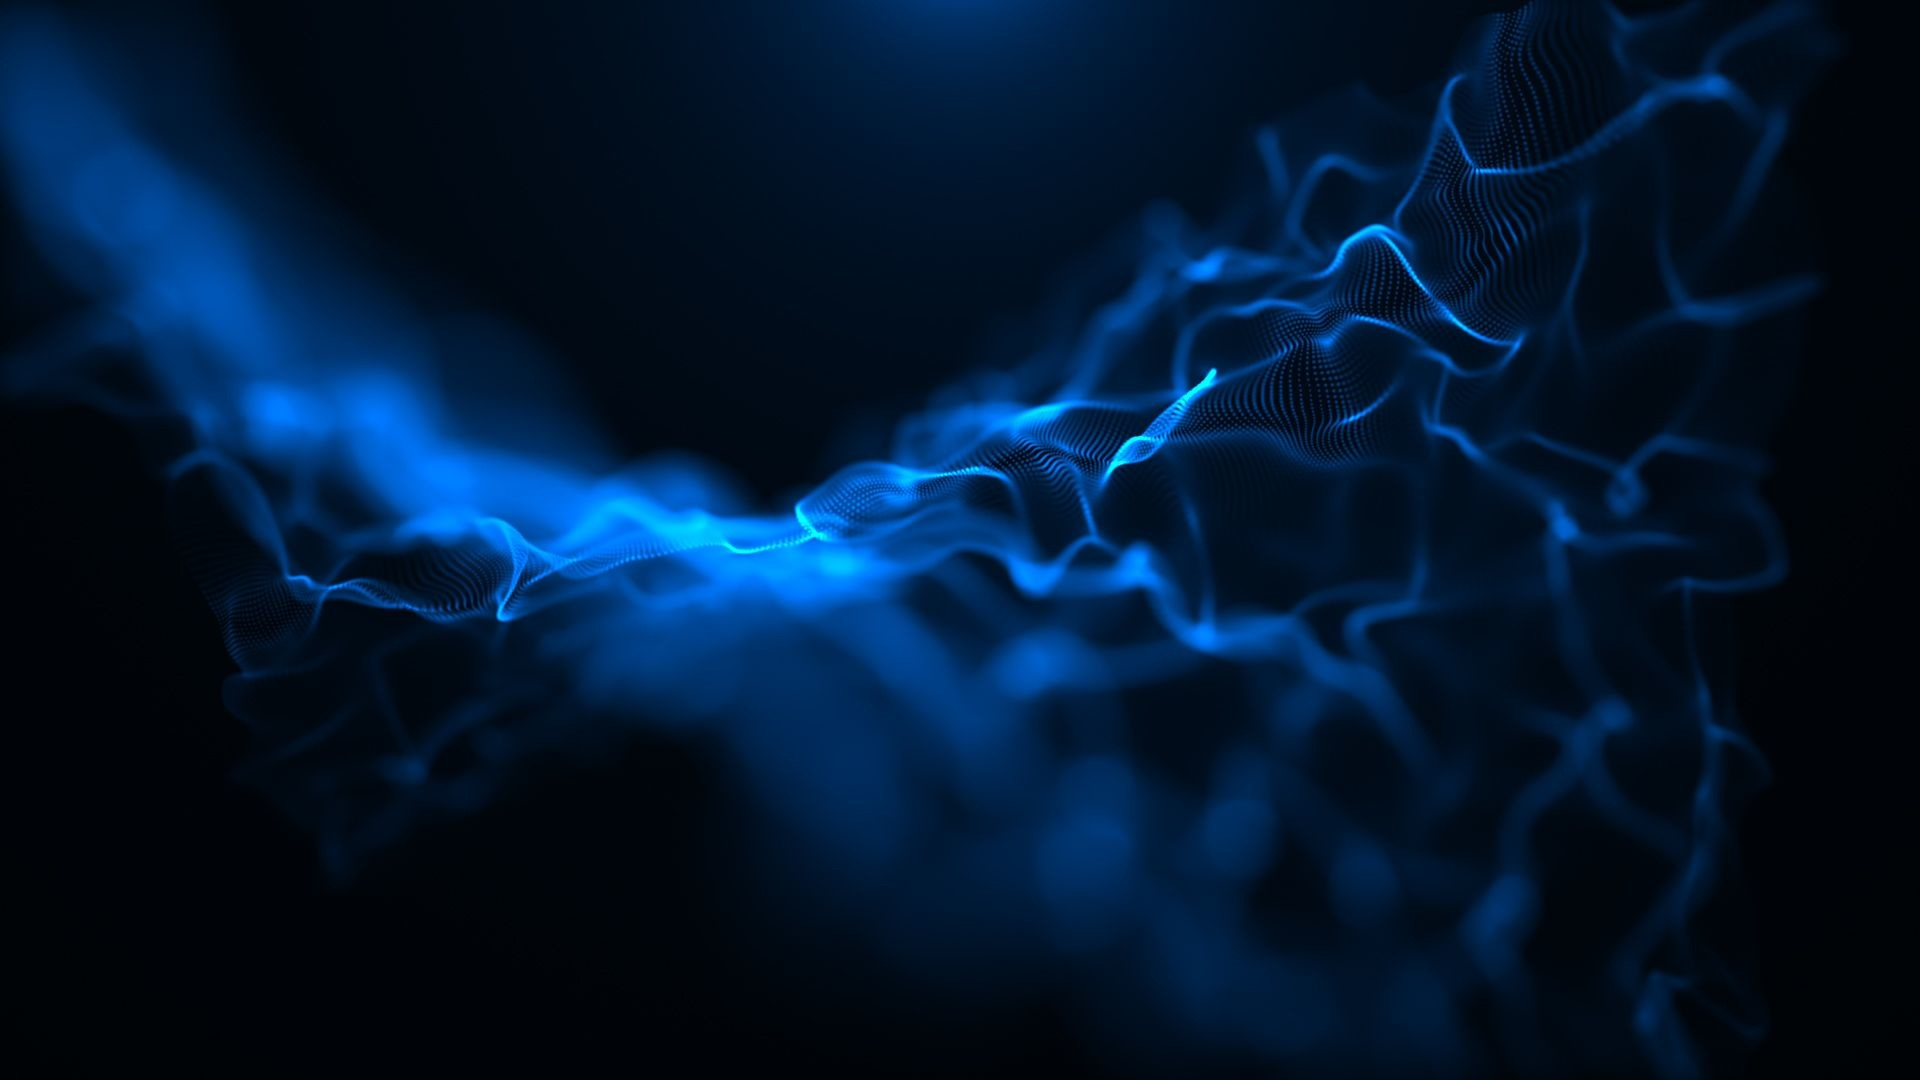 Abstract: Blue Form, desktop wallpaper nr. 62180 by emil1213